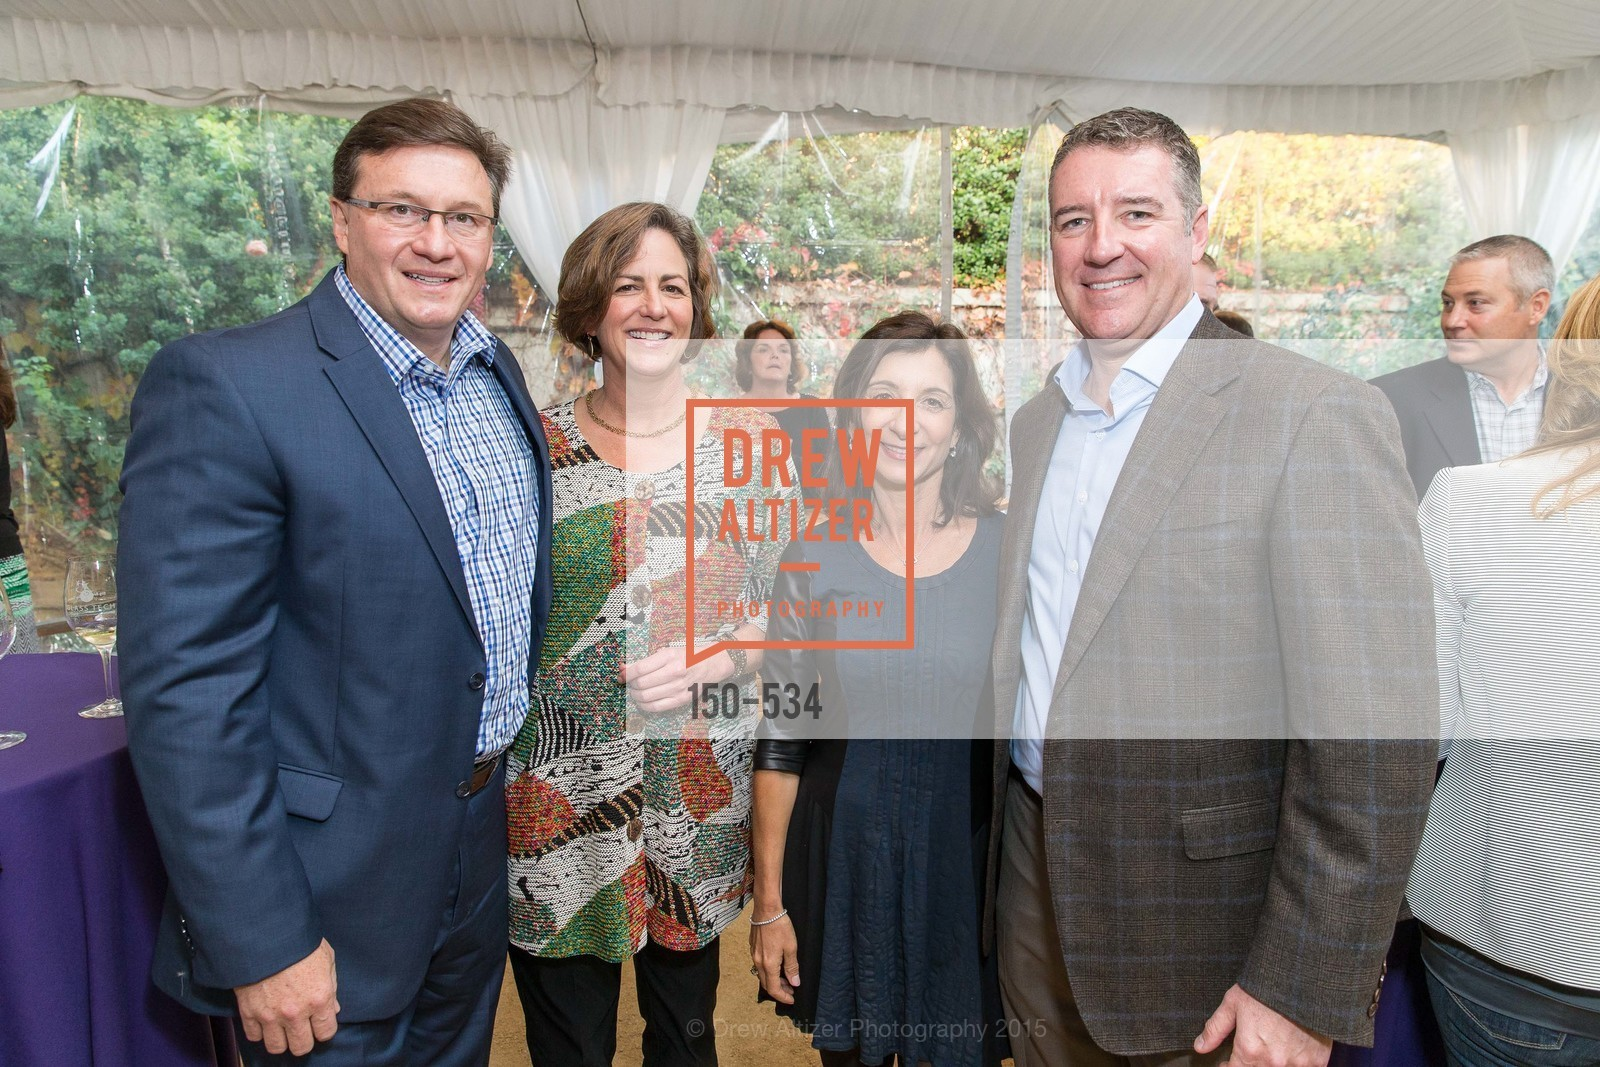 Brian Van Weele, Karen Van Weele, RoseAnn Frank, Tom Frank, Perfecting Pairings - Food, Wine and Stories, Chateau St Jean, Kenwood, November 14th, 2015,Drew Altizer, Drew Altizer Photography, full-service agency, private events, San Francisco photographer, photographer california